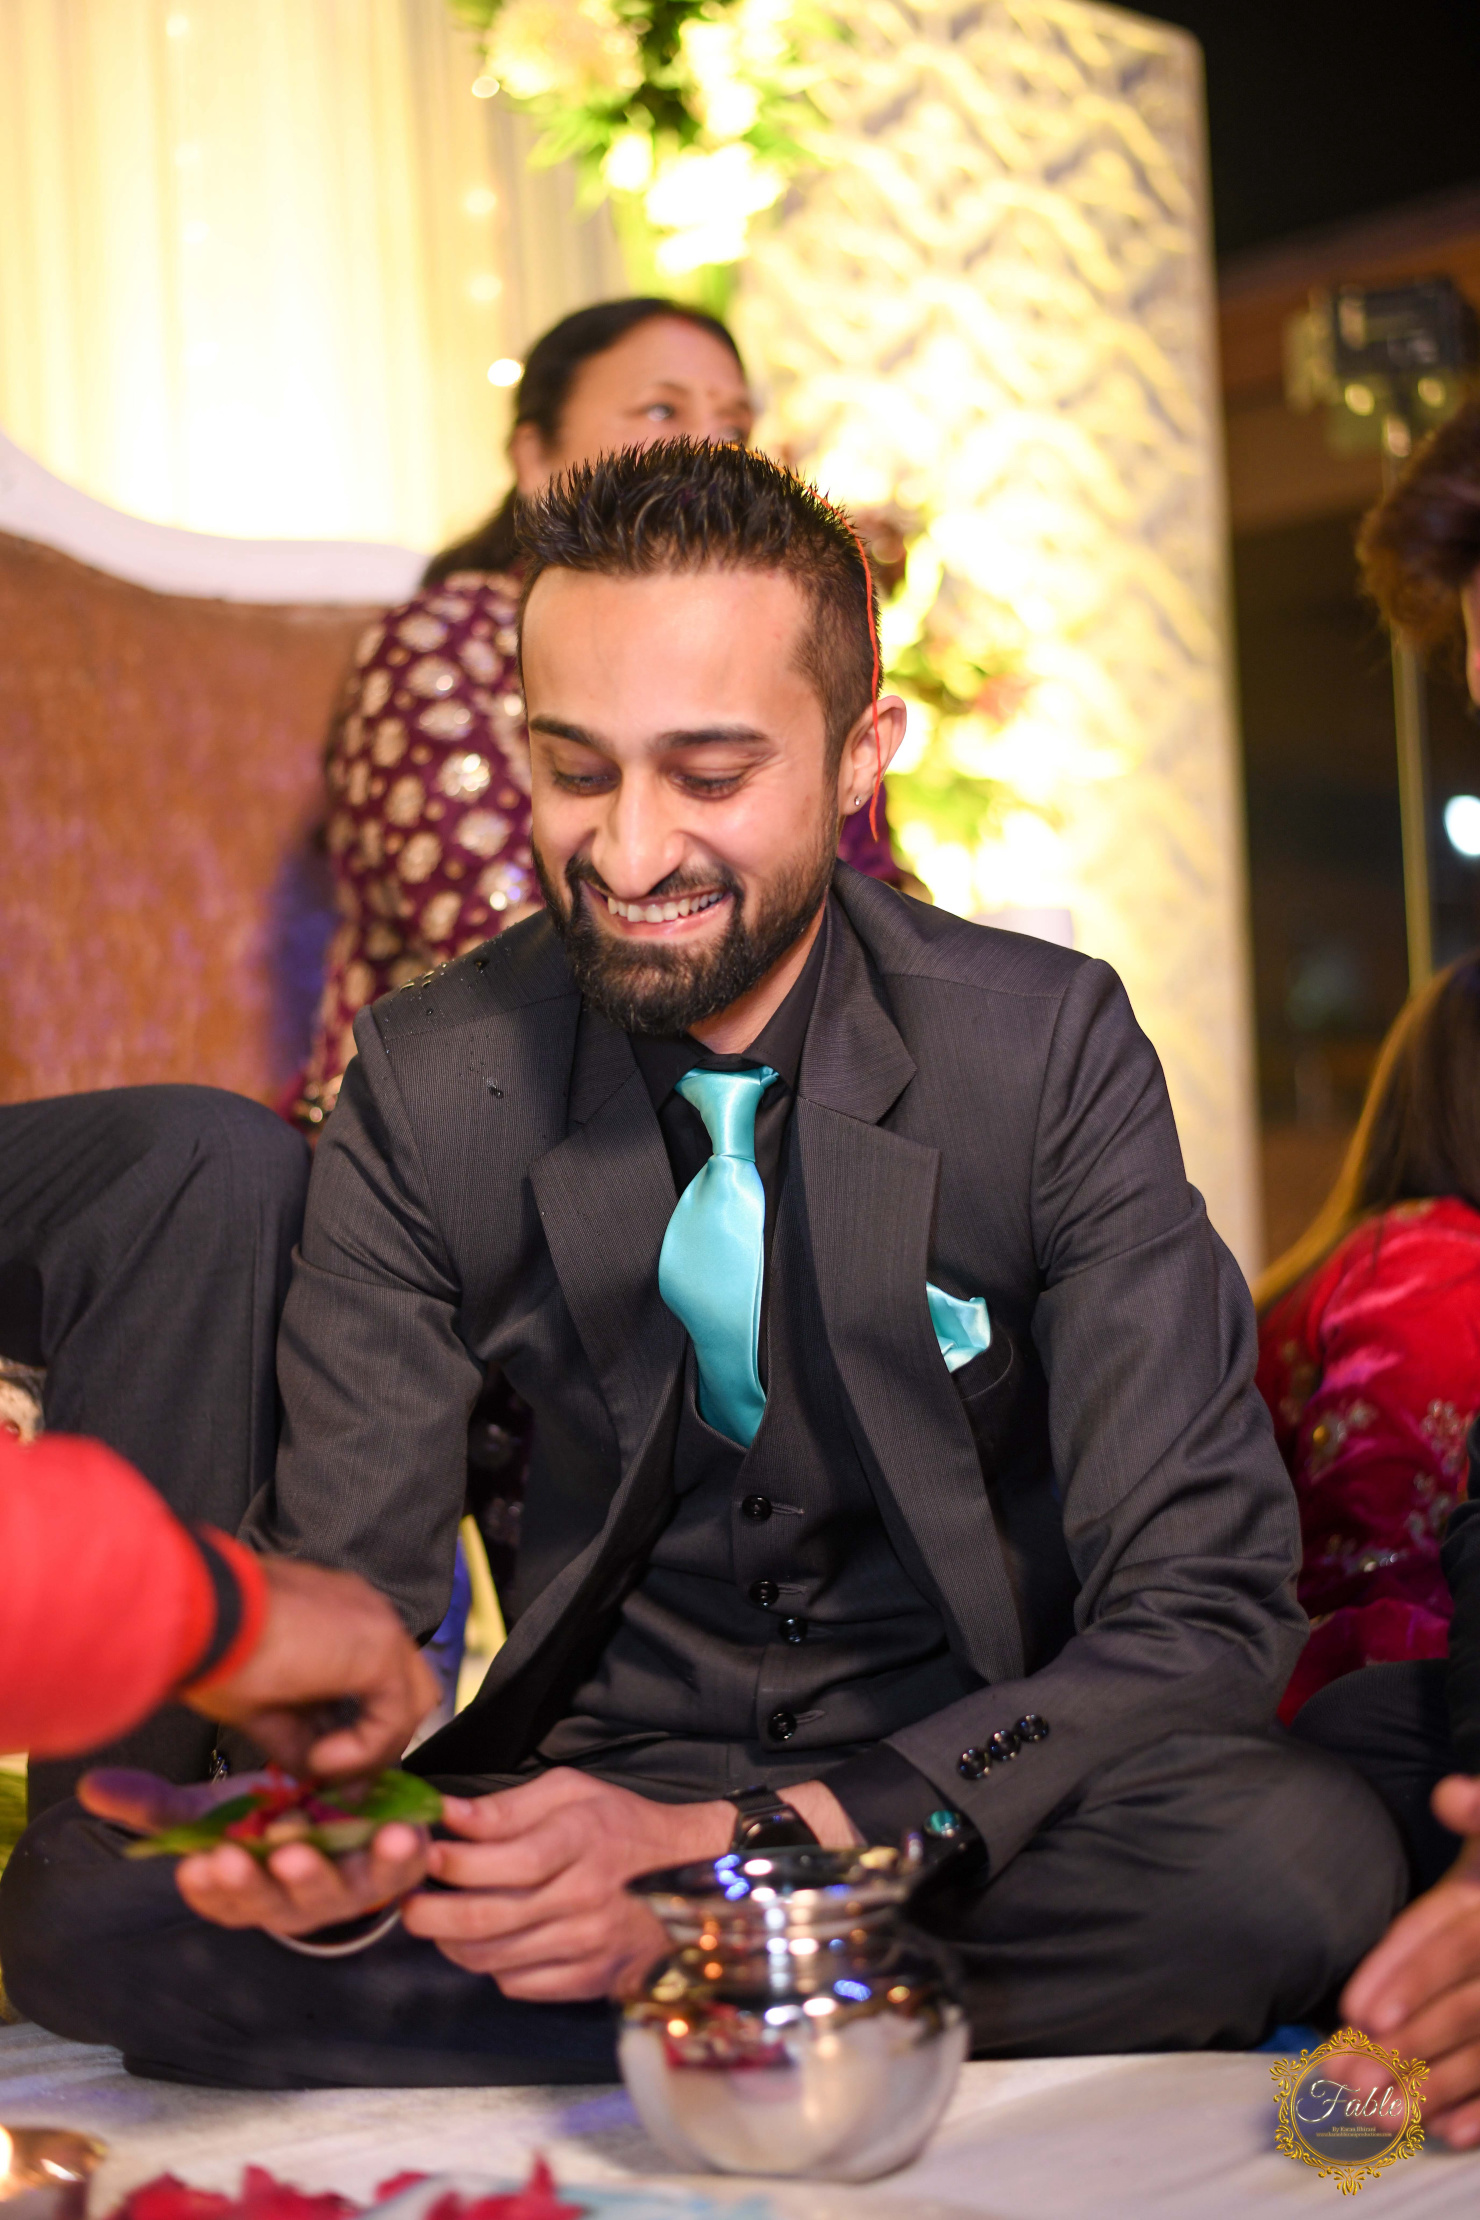 candid shot of the groom in black